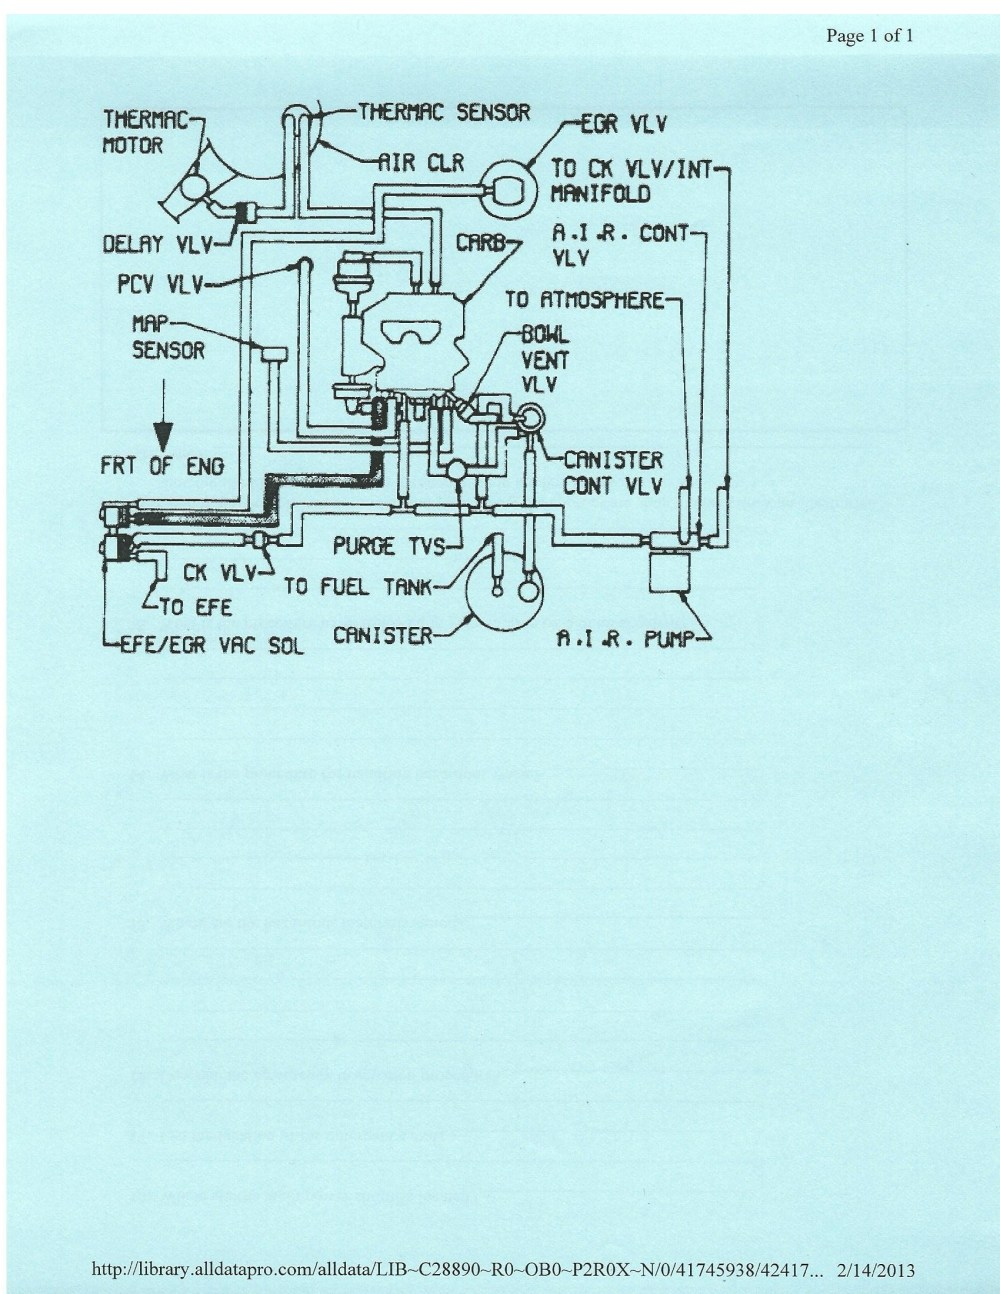 medium resolution of buick 231 v6 vacuum diagram manual e book vacumm diagram and a c heater control vacuum diagram